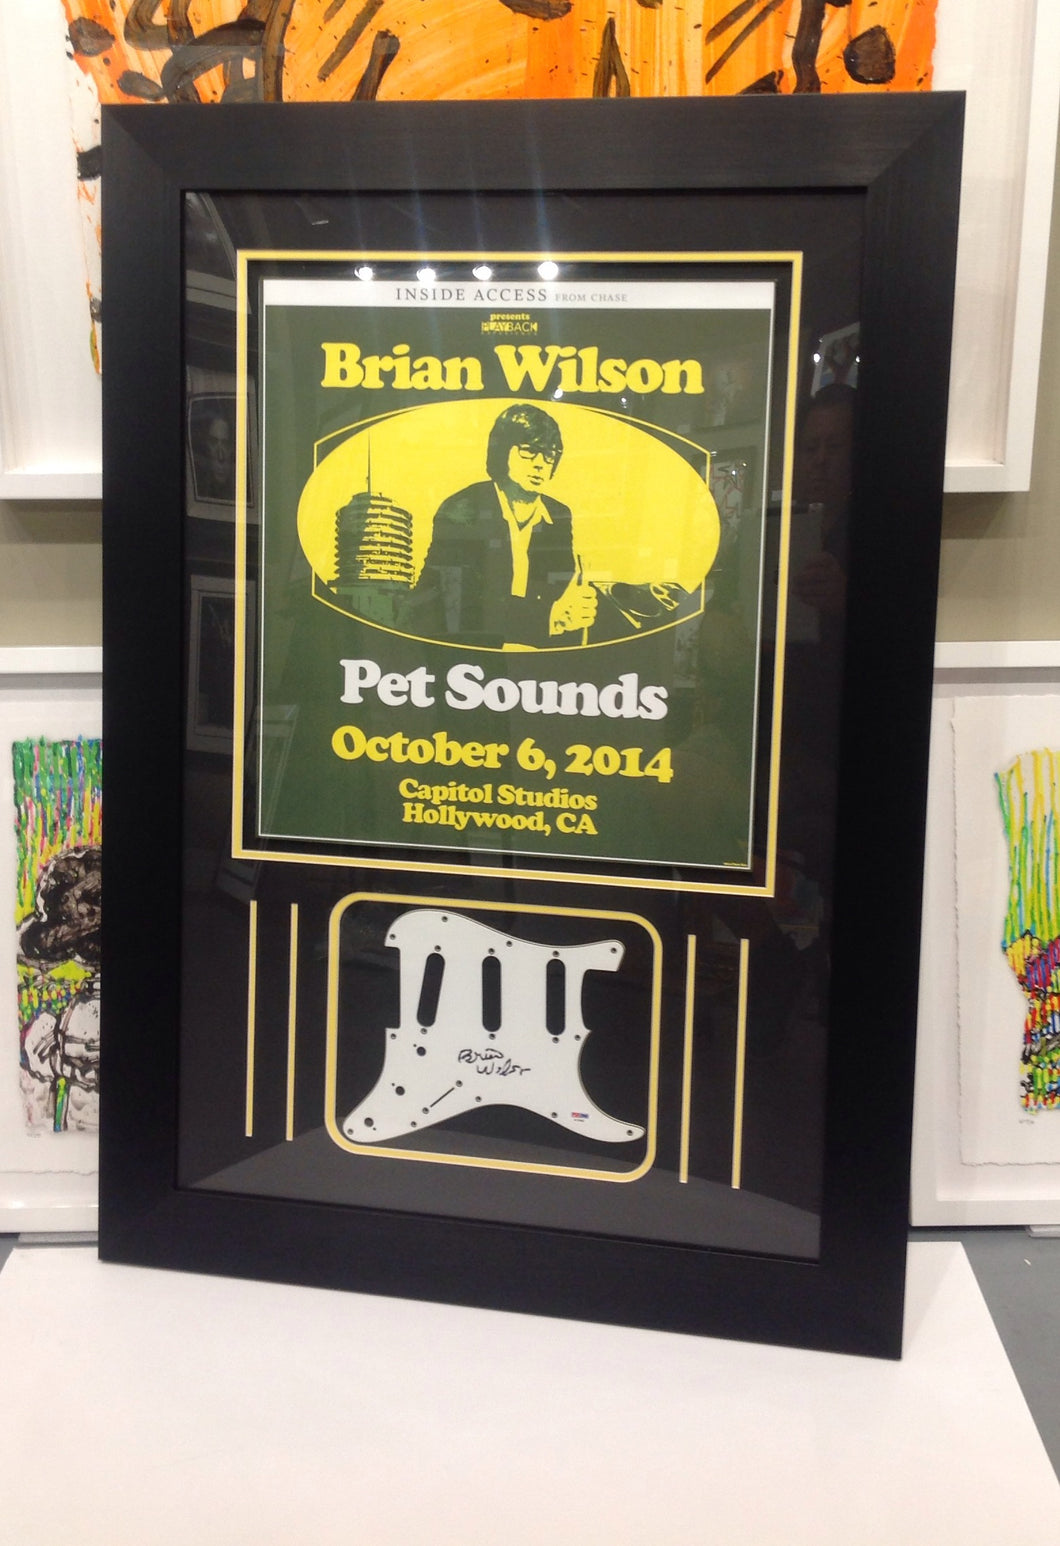 BRIAN WILSON SIGNED PICKGUARD WITH COMMEMORATIVE POSTER